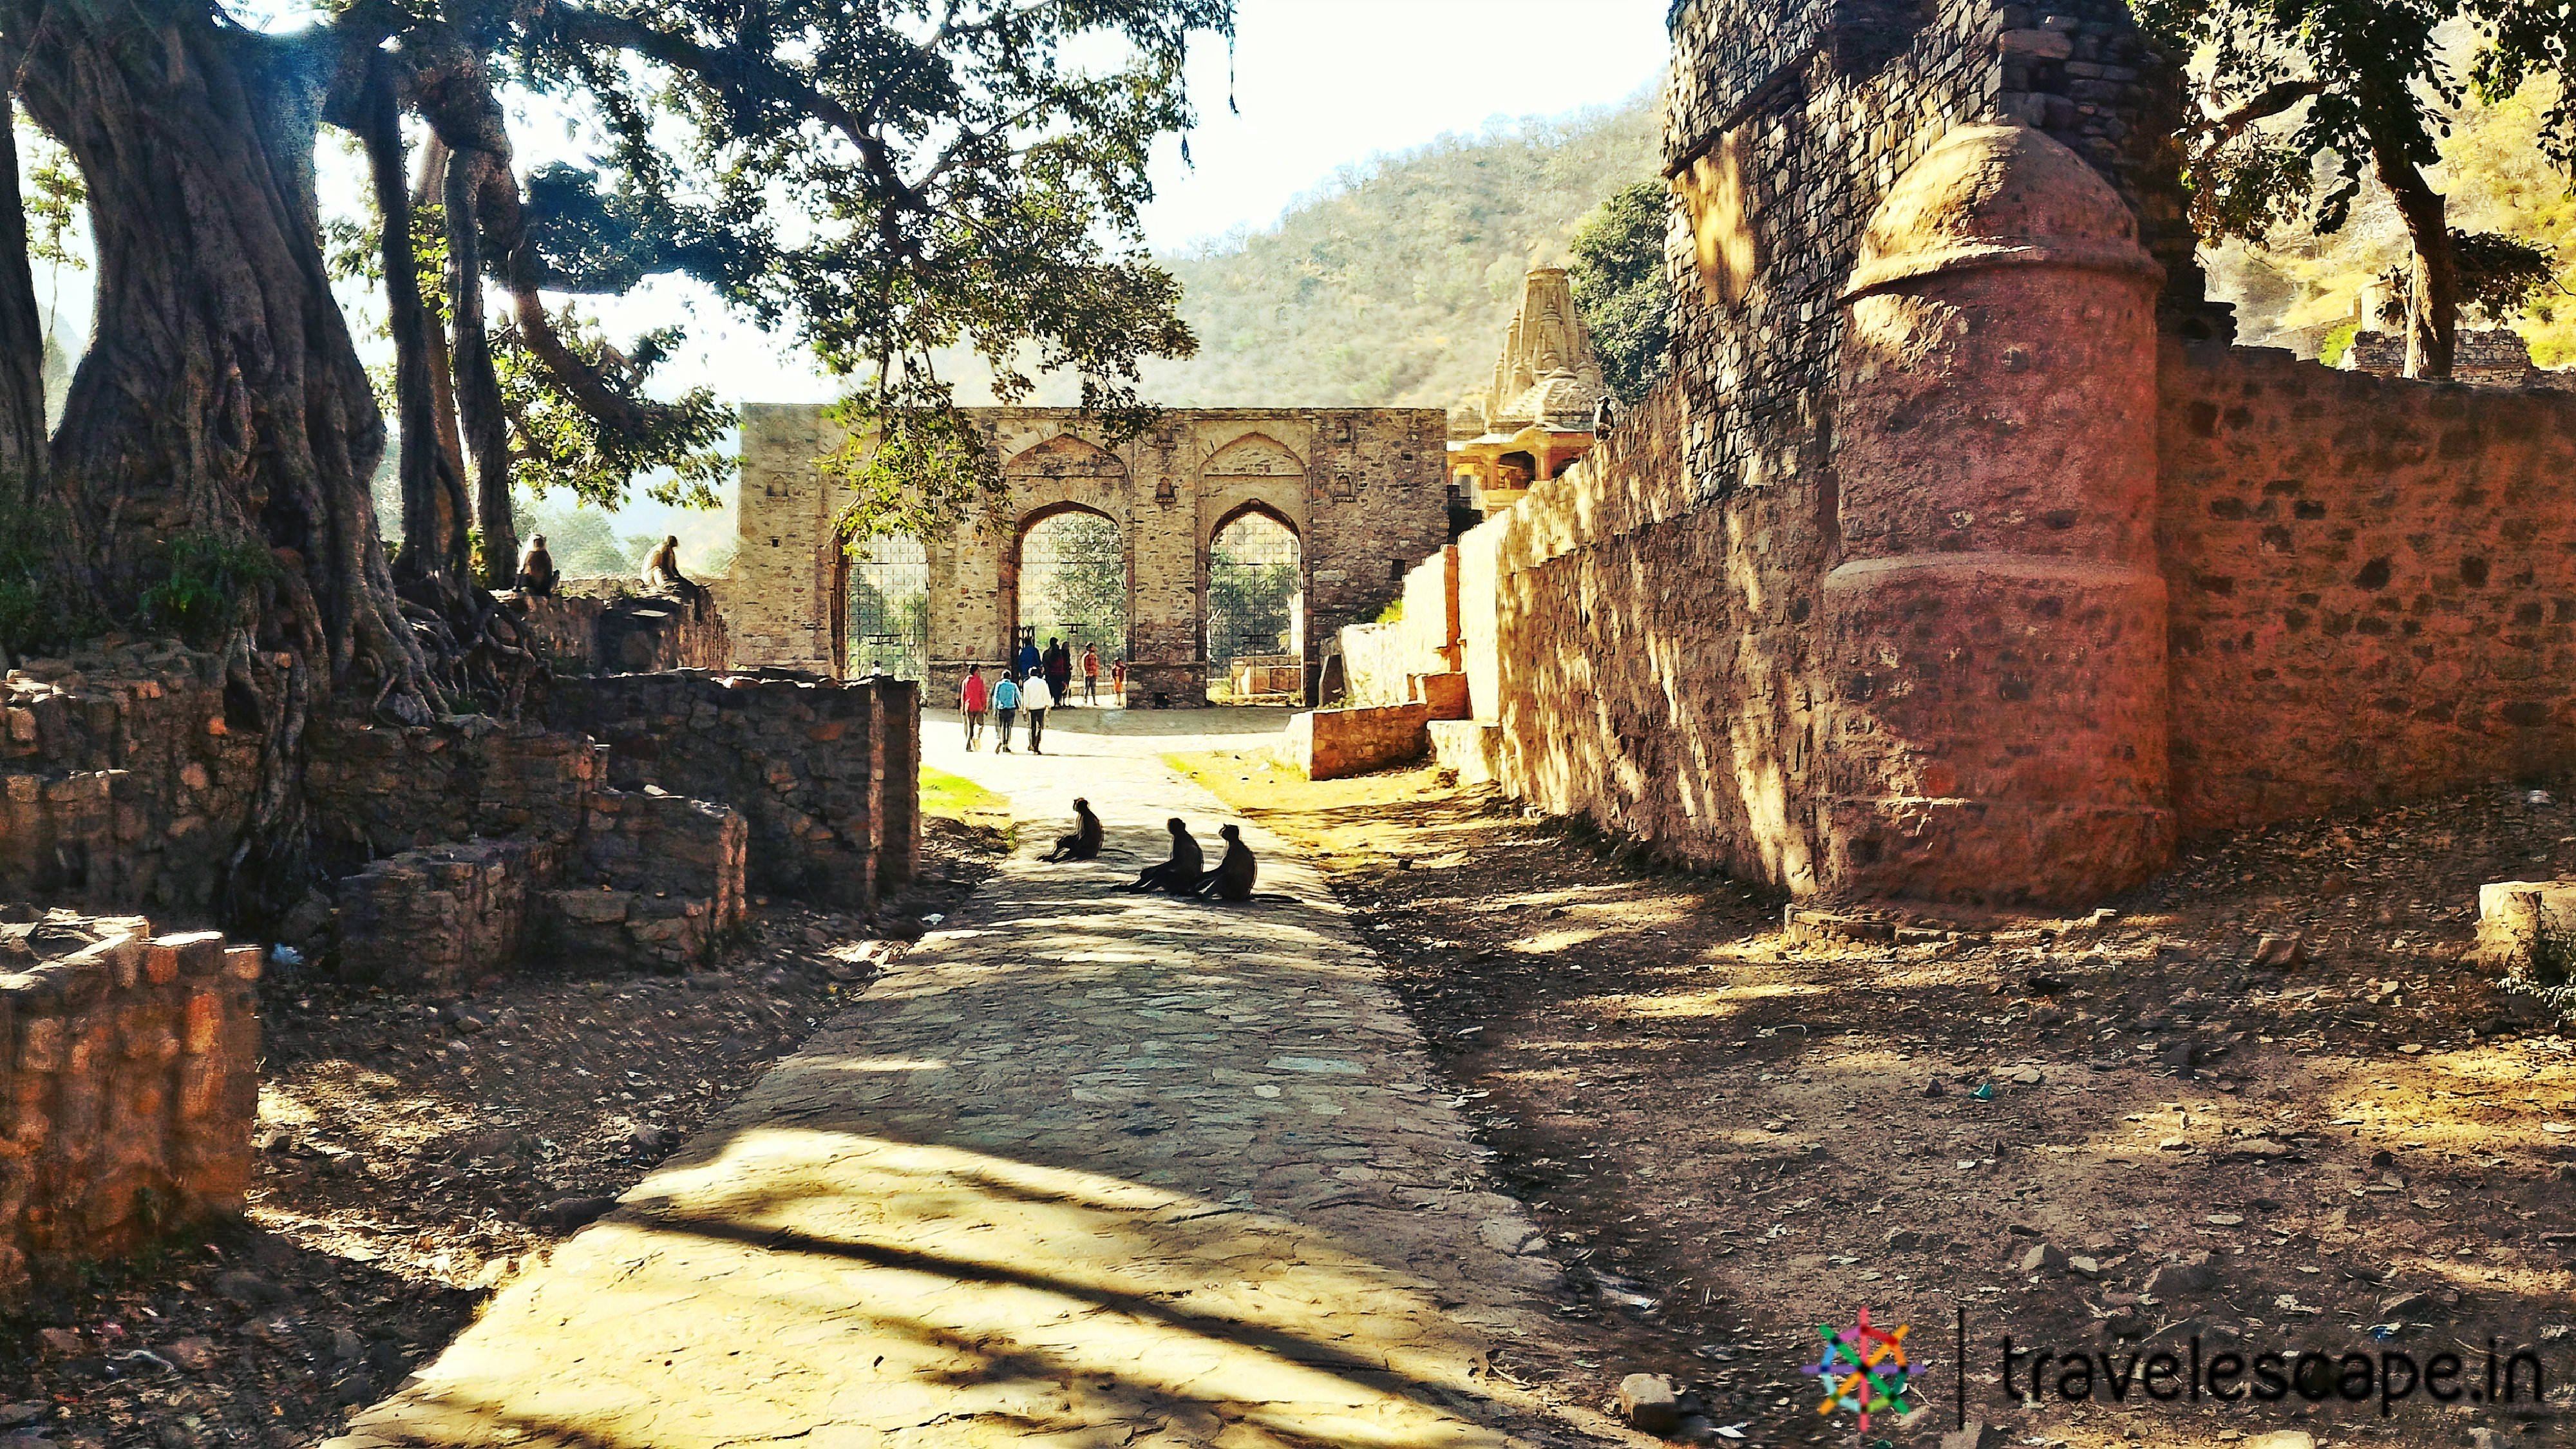 Bhangarh Fort Entrnace